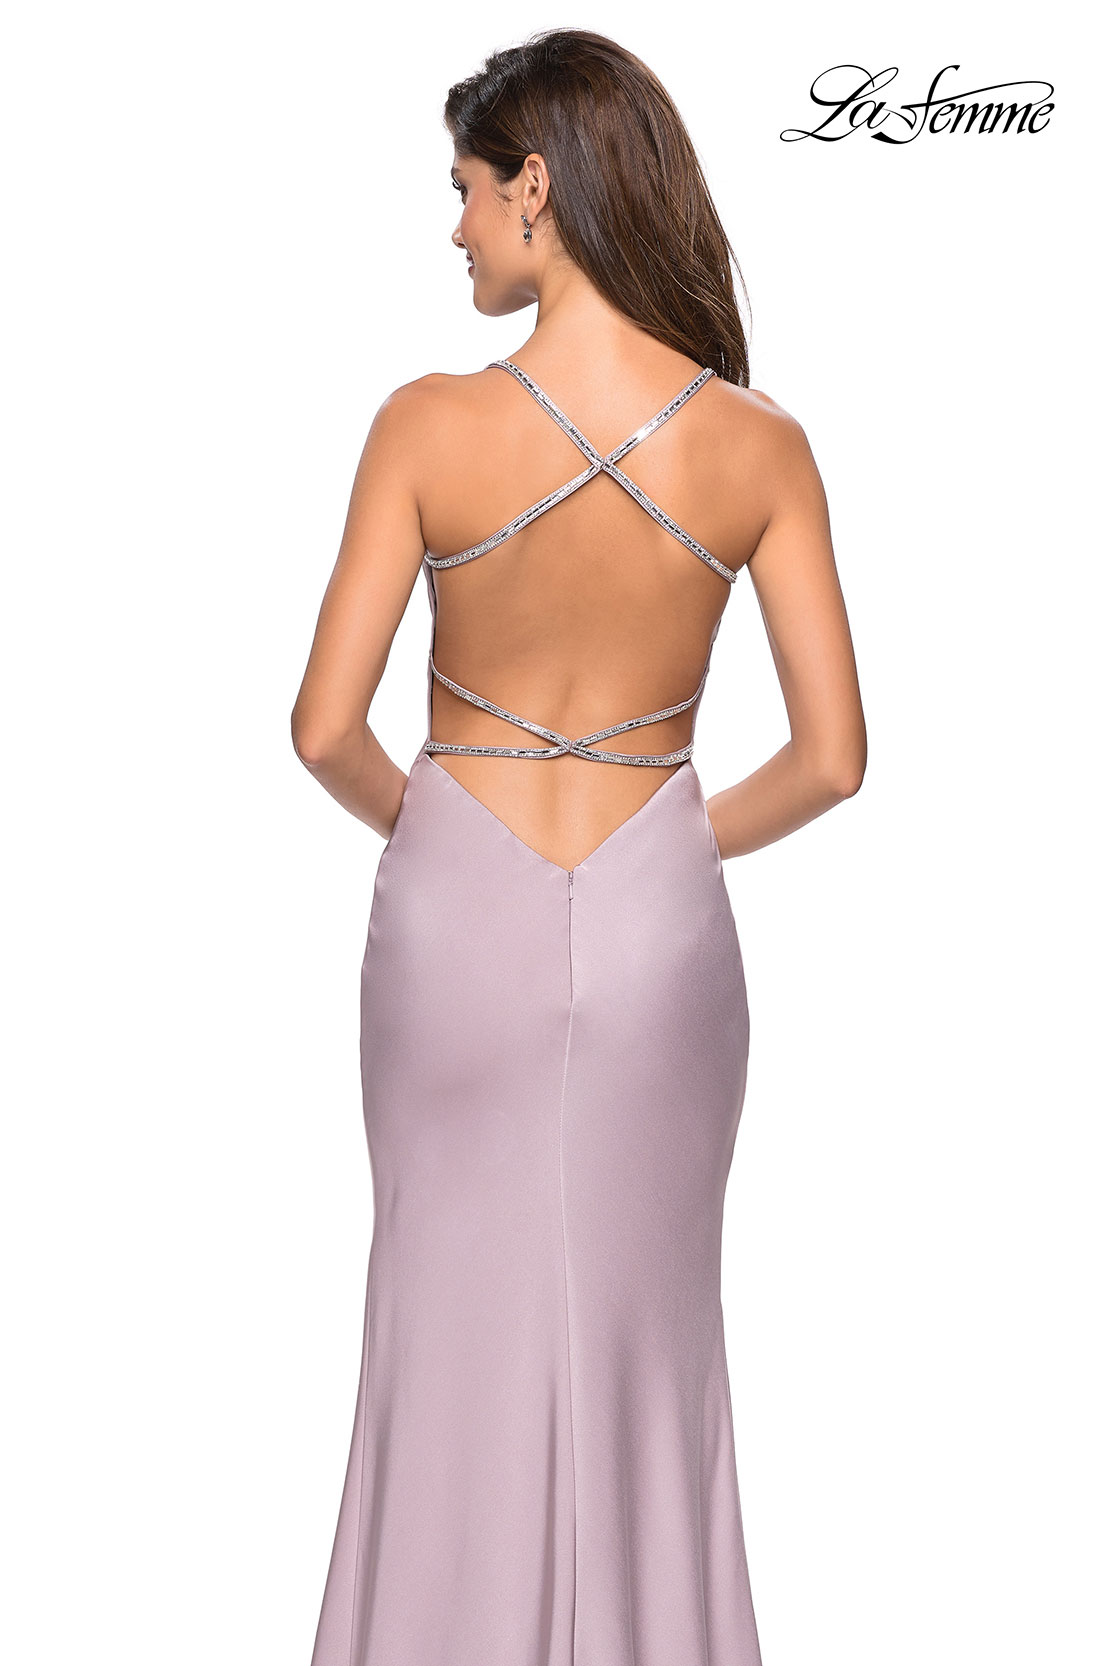 mauve dress with rhinestone straps and open back